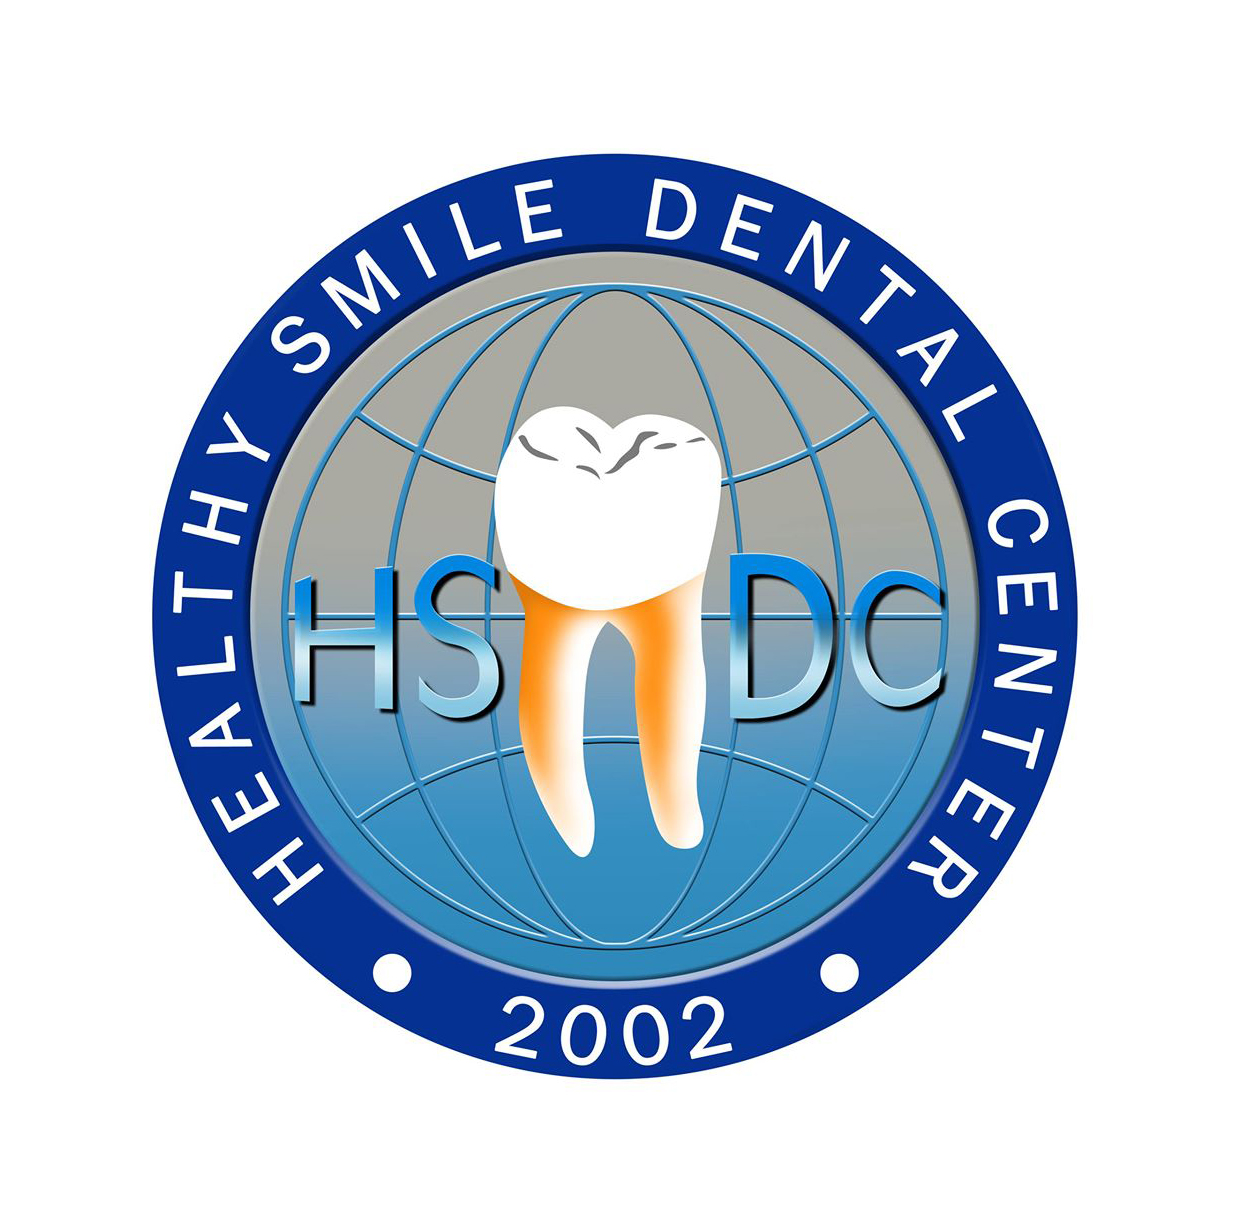 HEALTHY_SMILE_DENTAL_CENTER